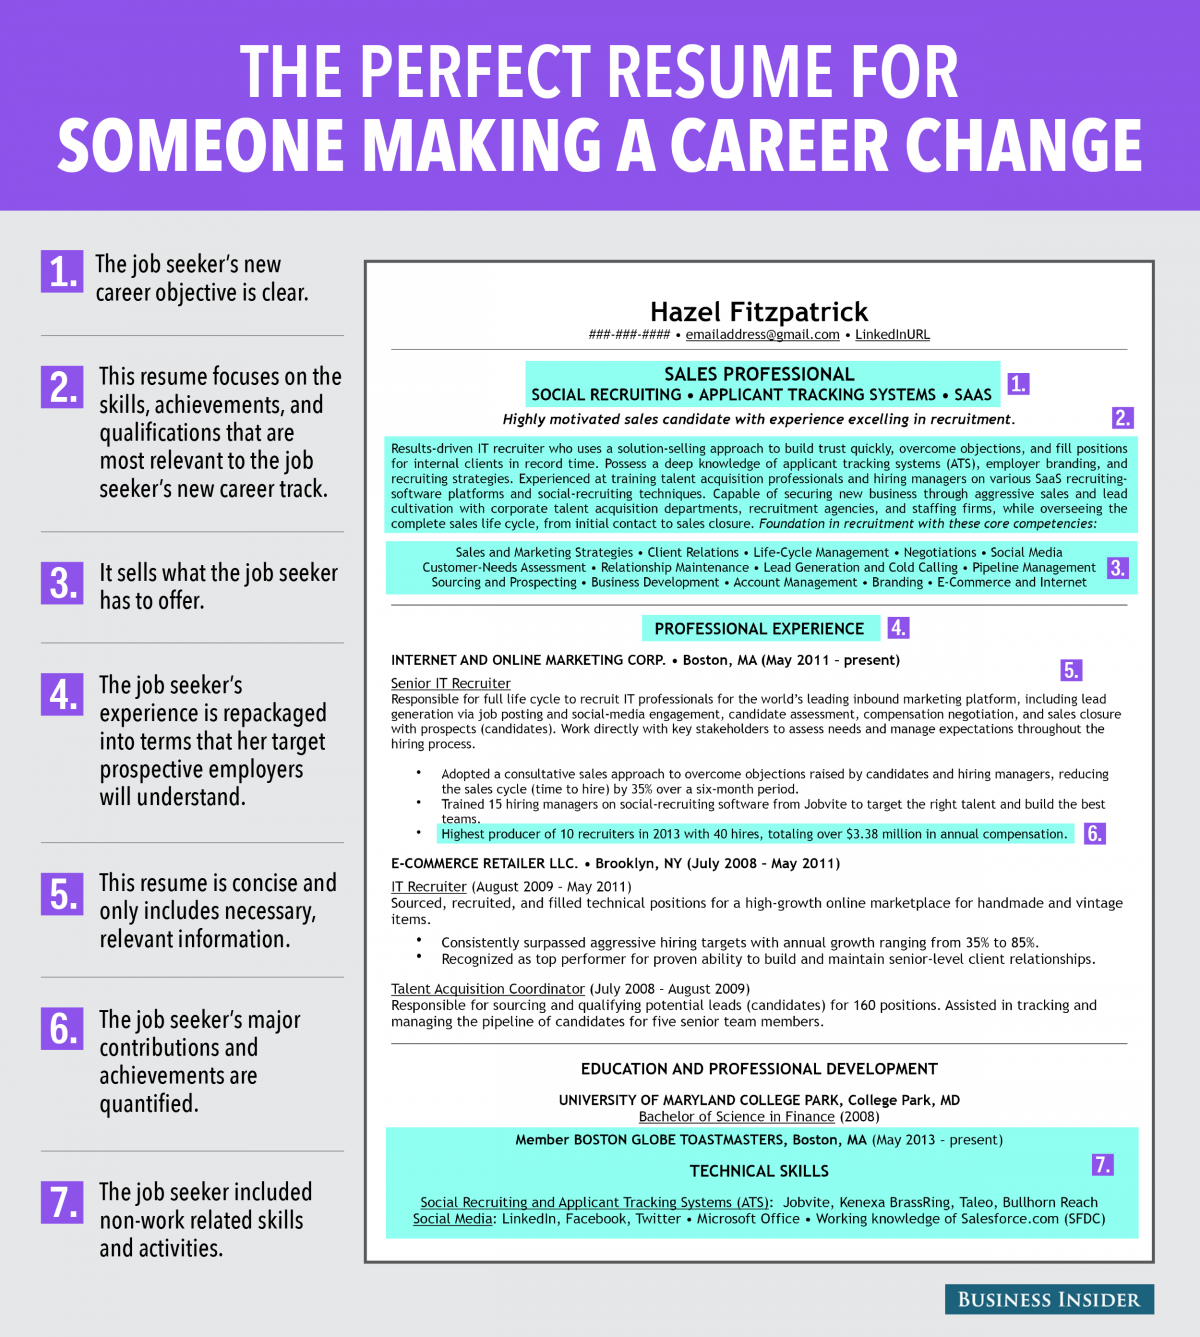 Career Change Resume Samples | Sample Resumes